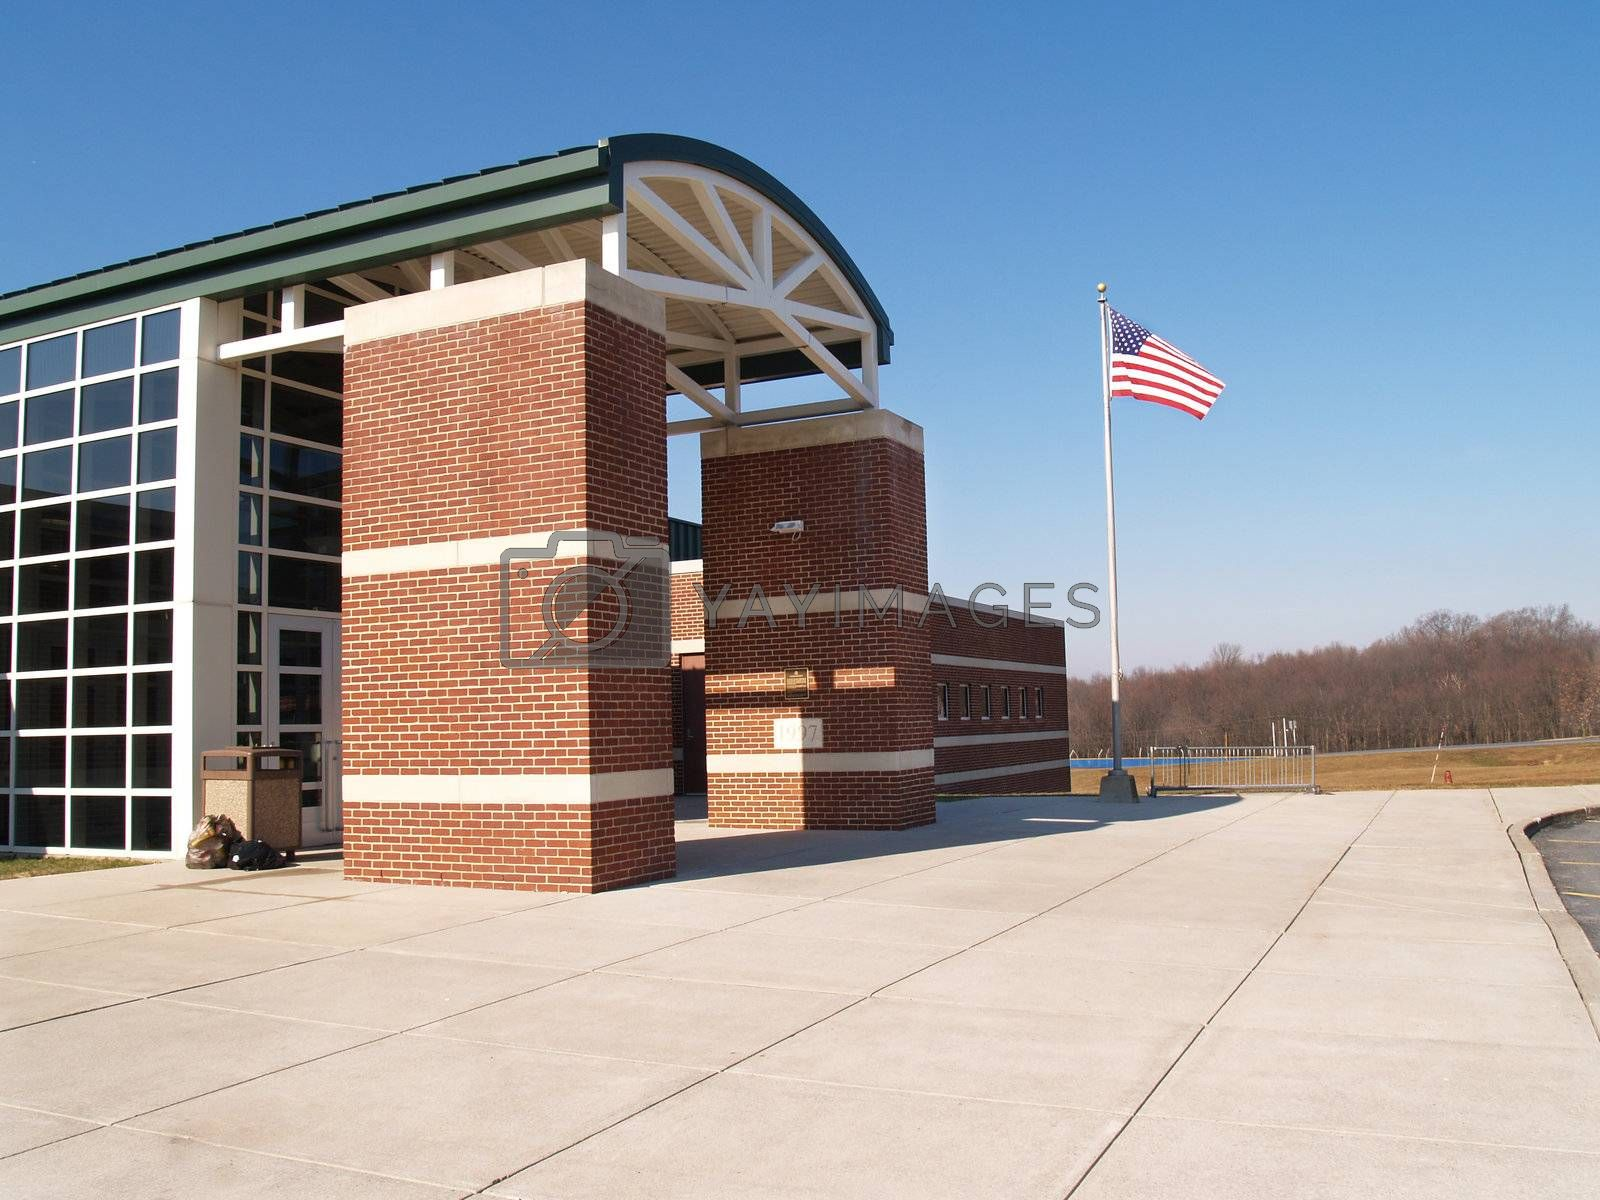 exterior of a red brick modern building with an American flag